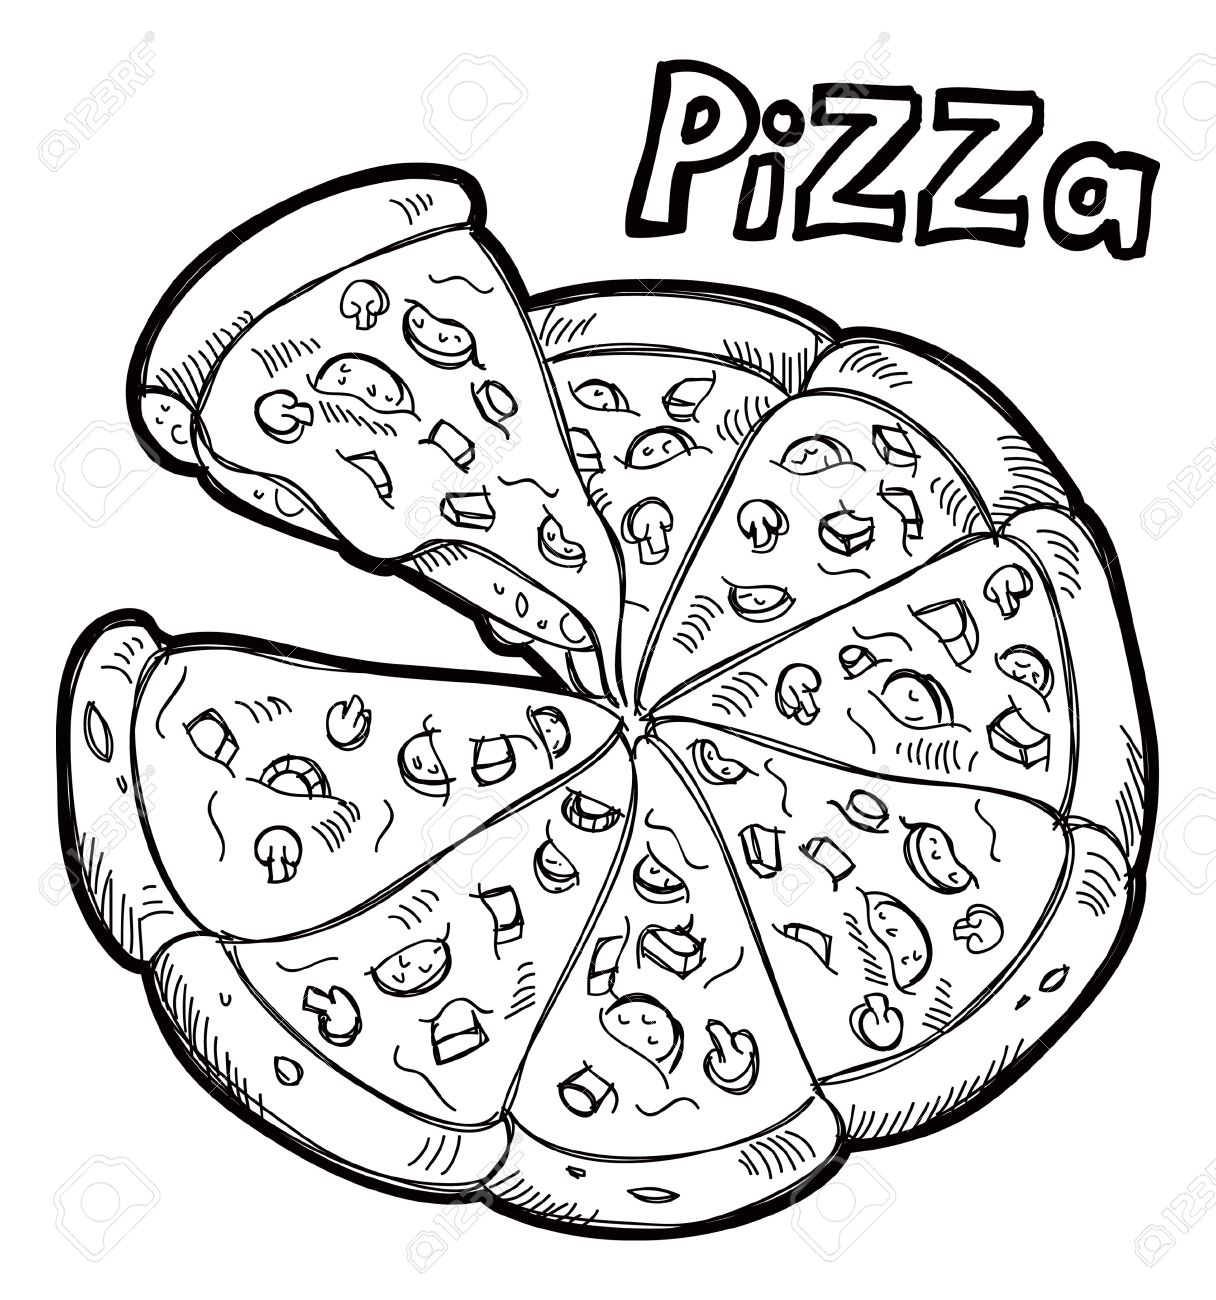 Best Pizza Clipart Black And White #6397.